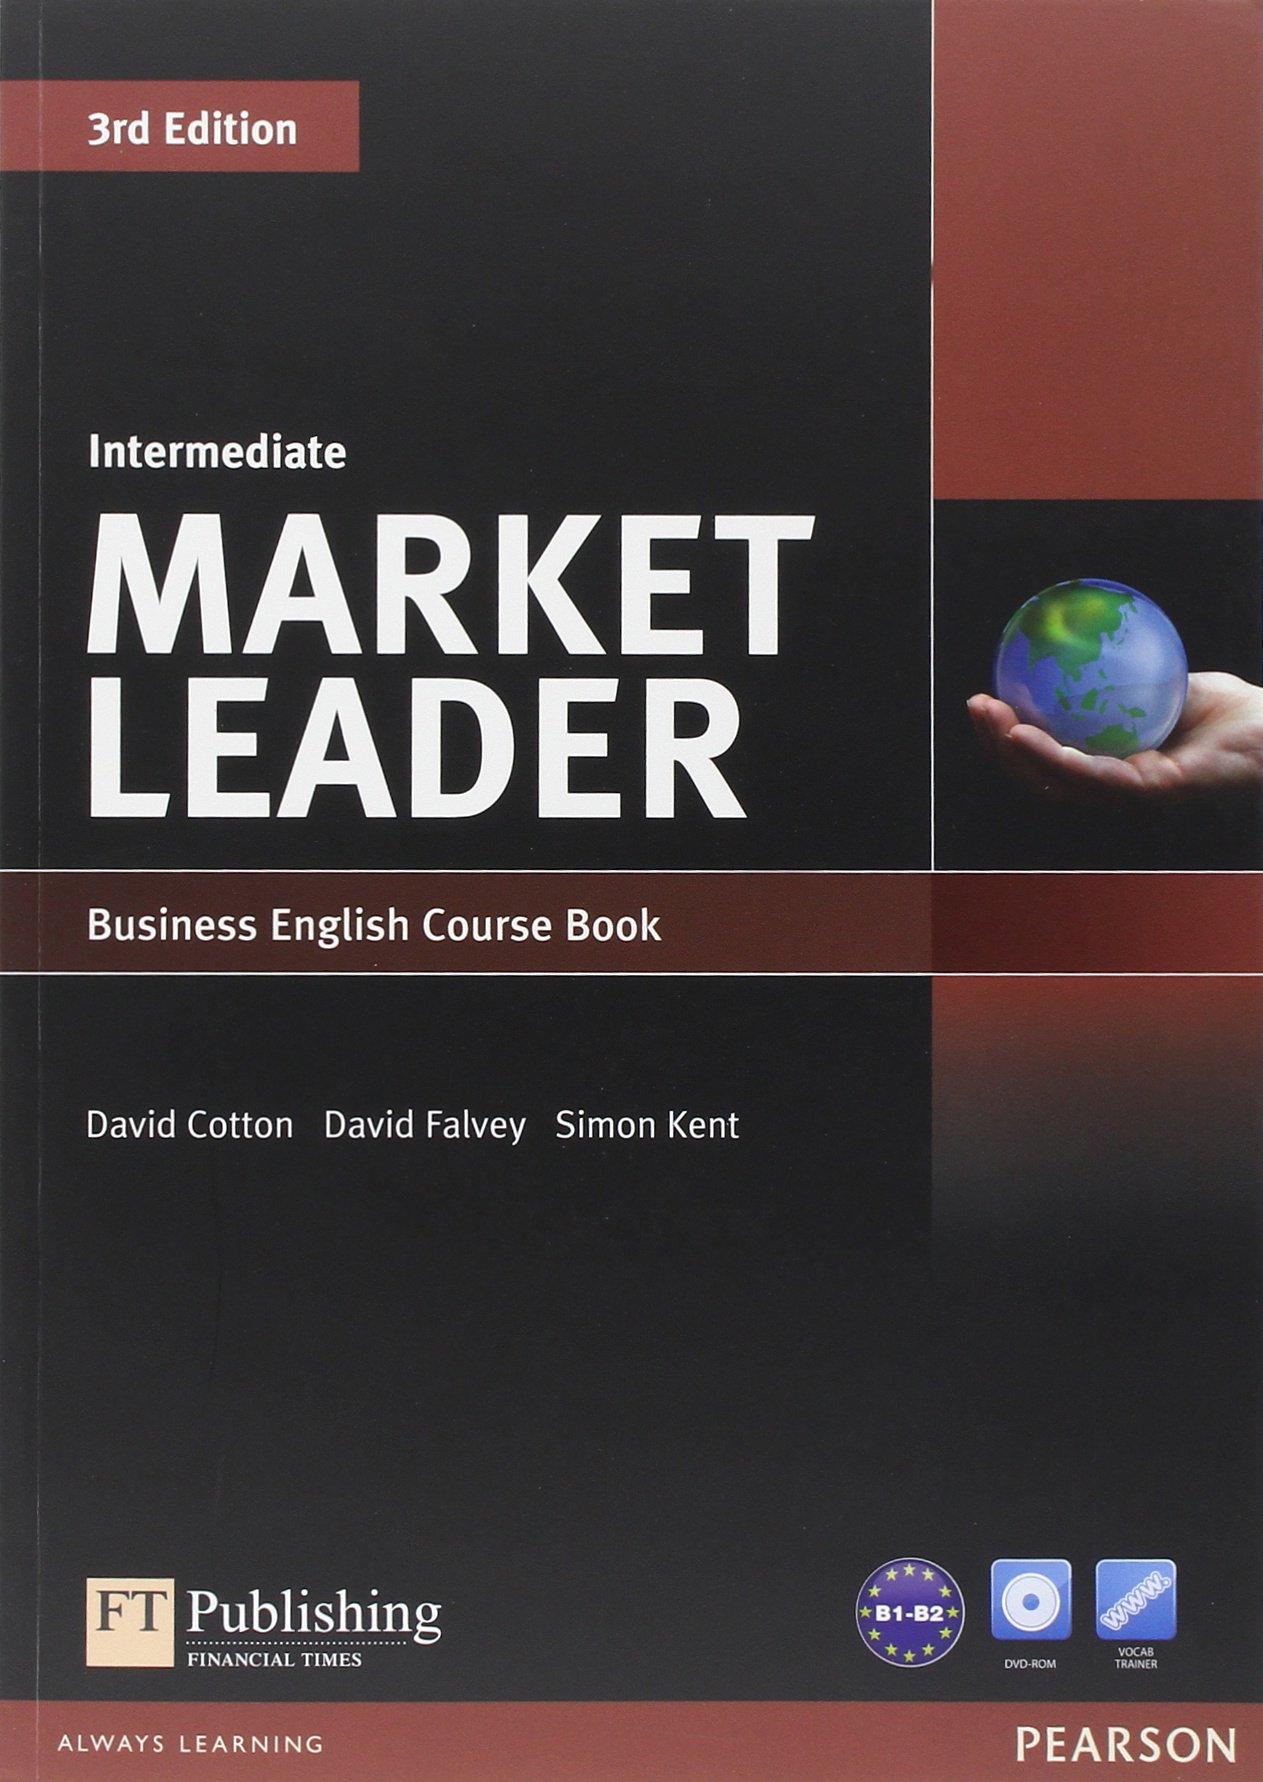 Intermediate MARKET LEADER - book cover